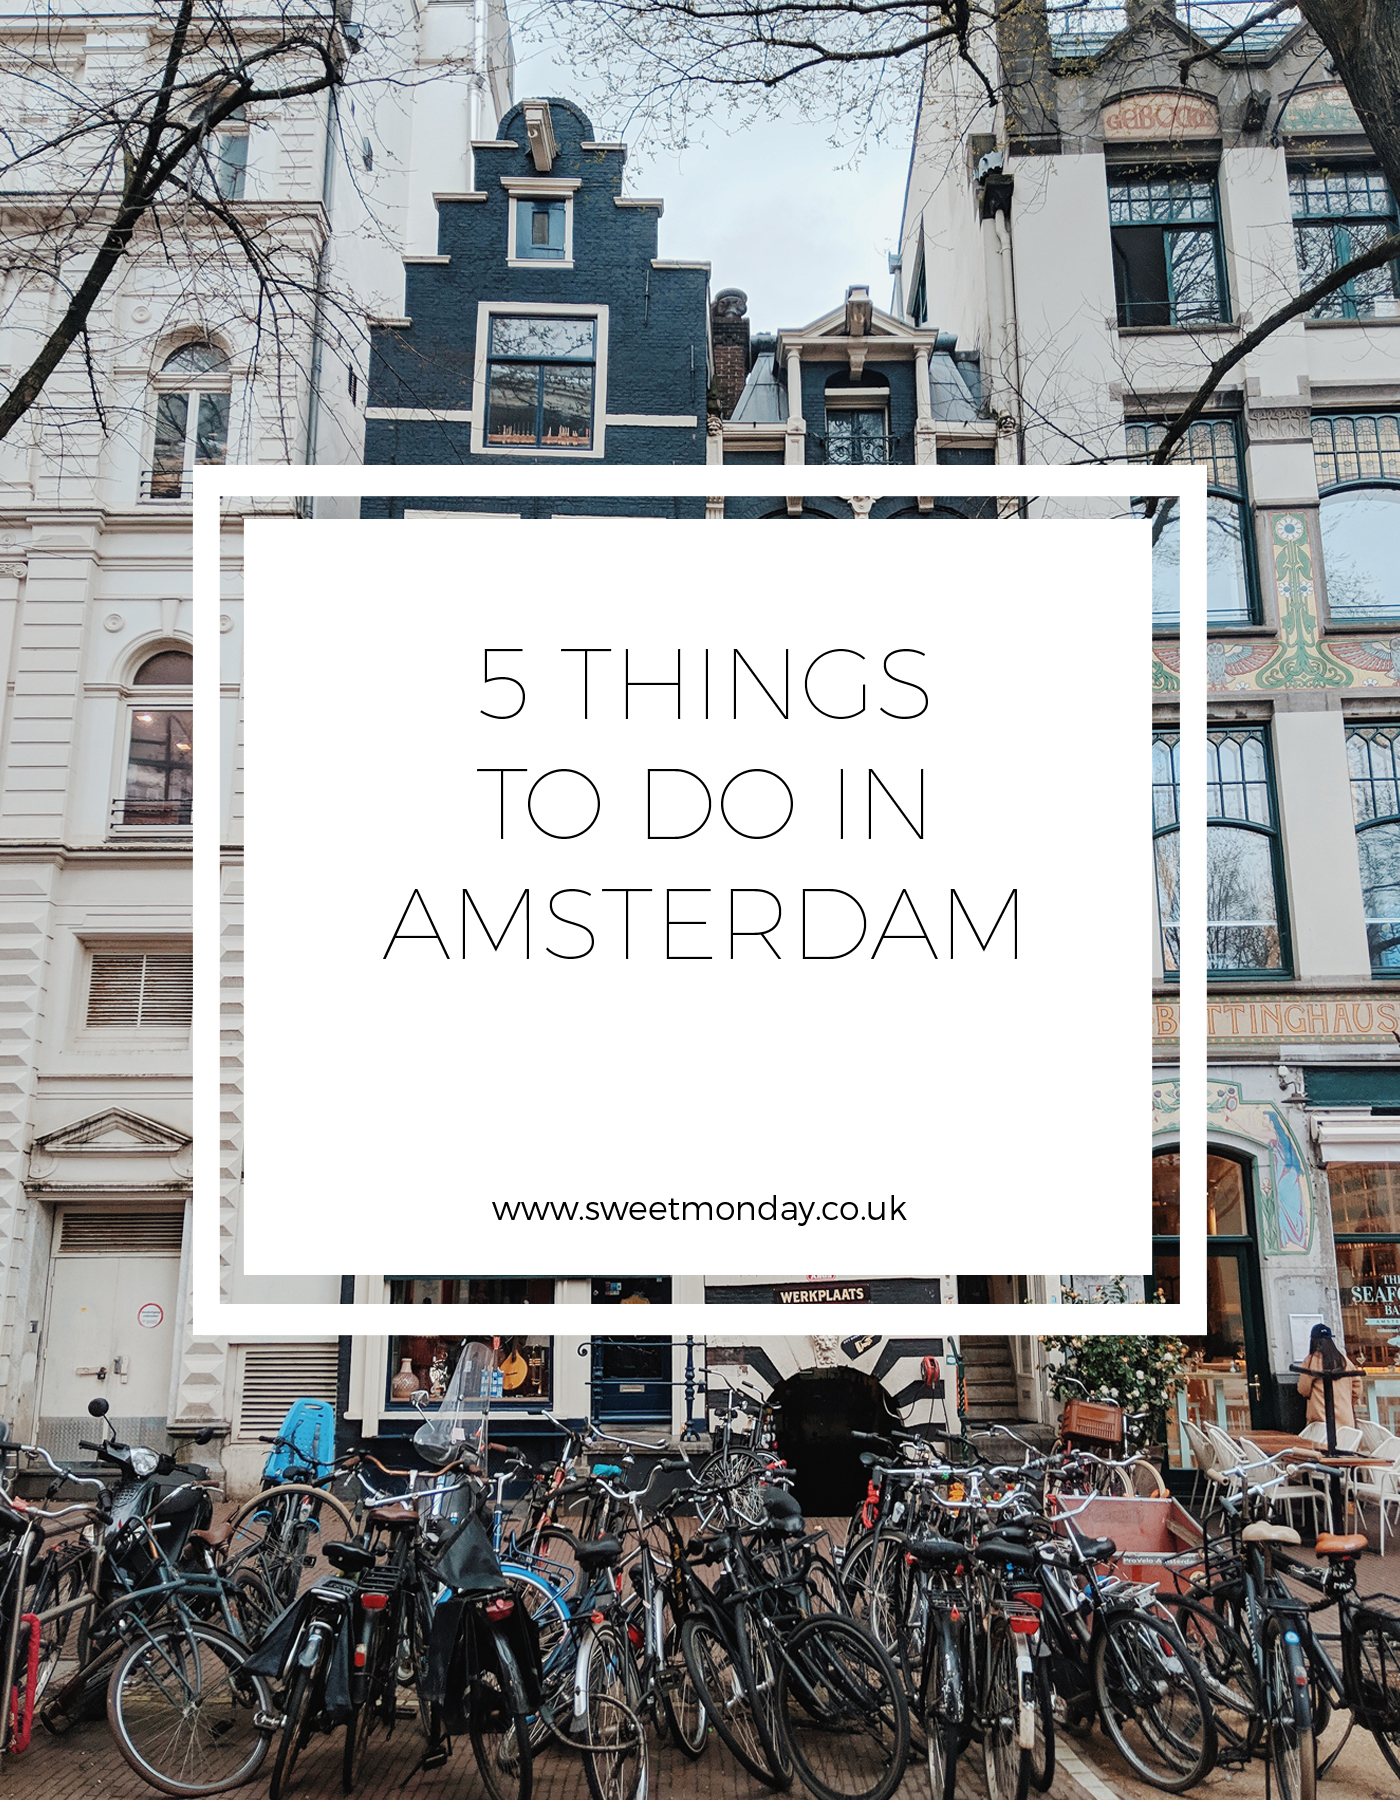 5 Things to do in Amsterdam